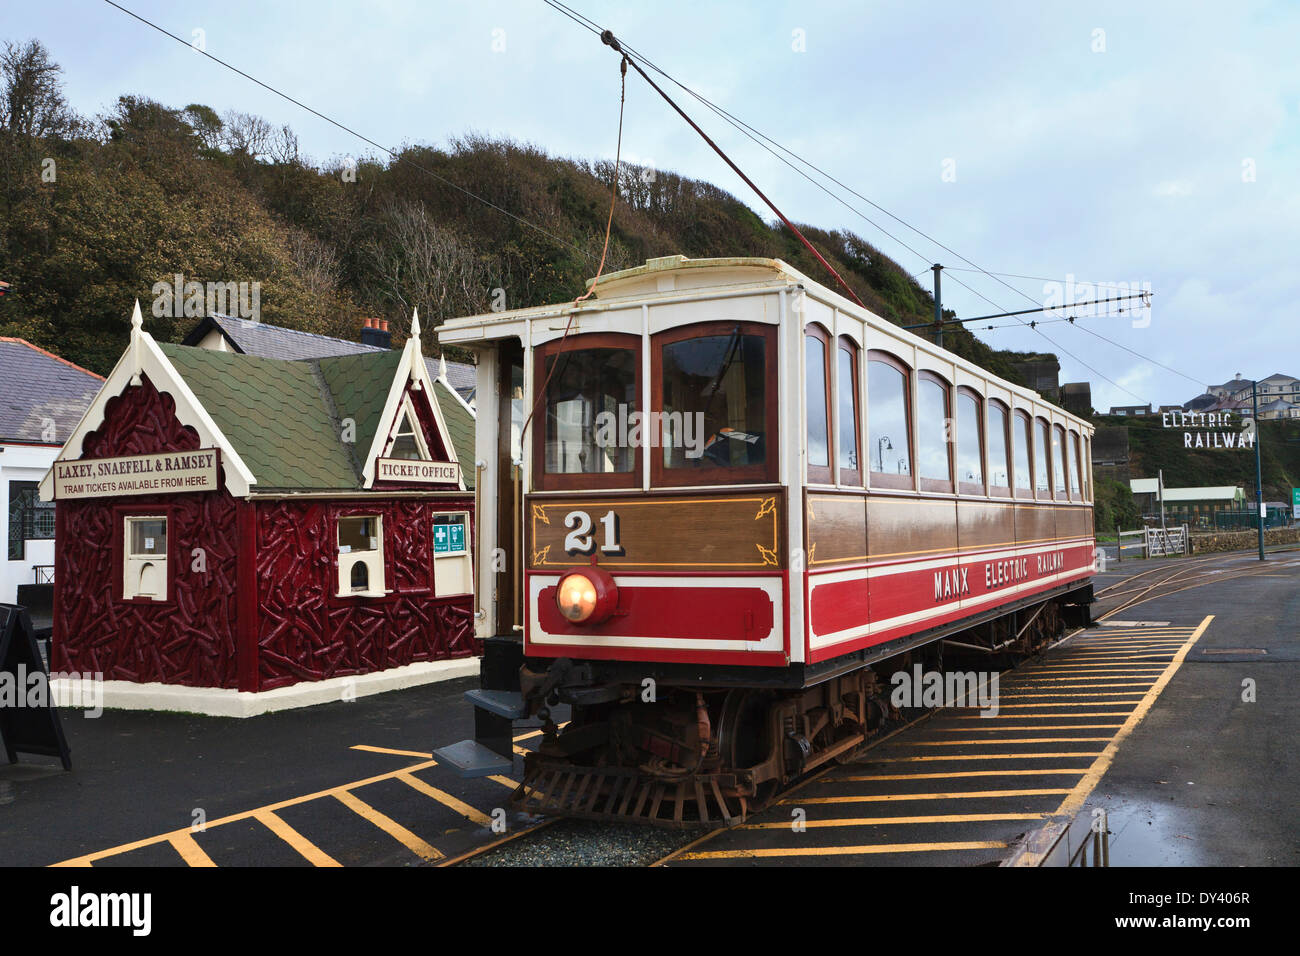 The Manx Electric Railway, Douglas, Isle of Man Stock Photo